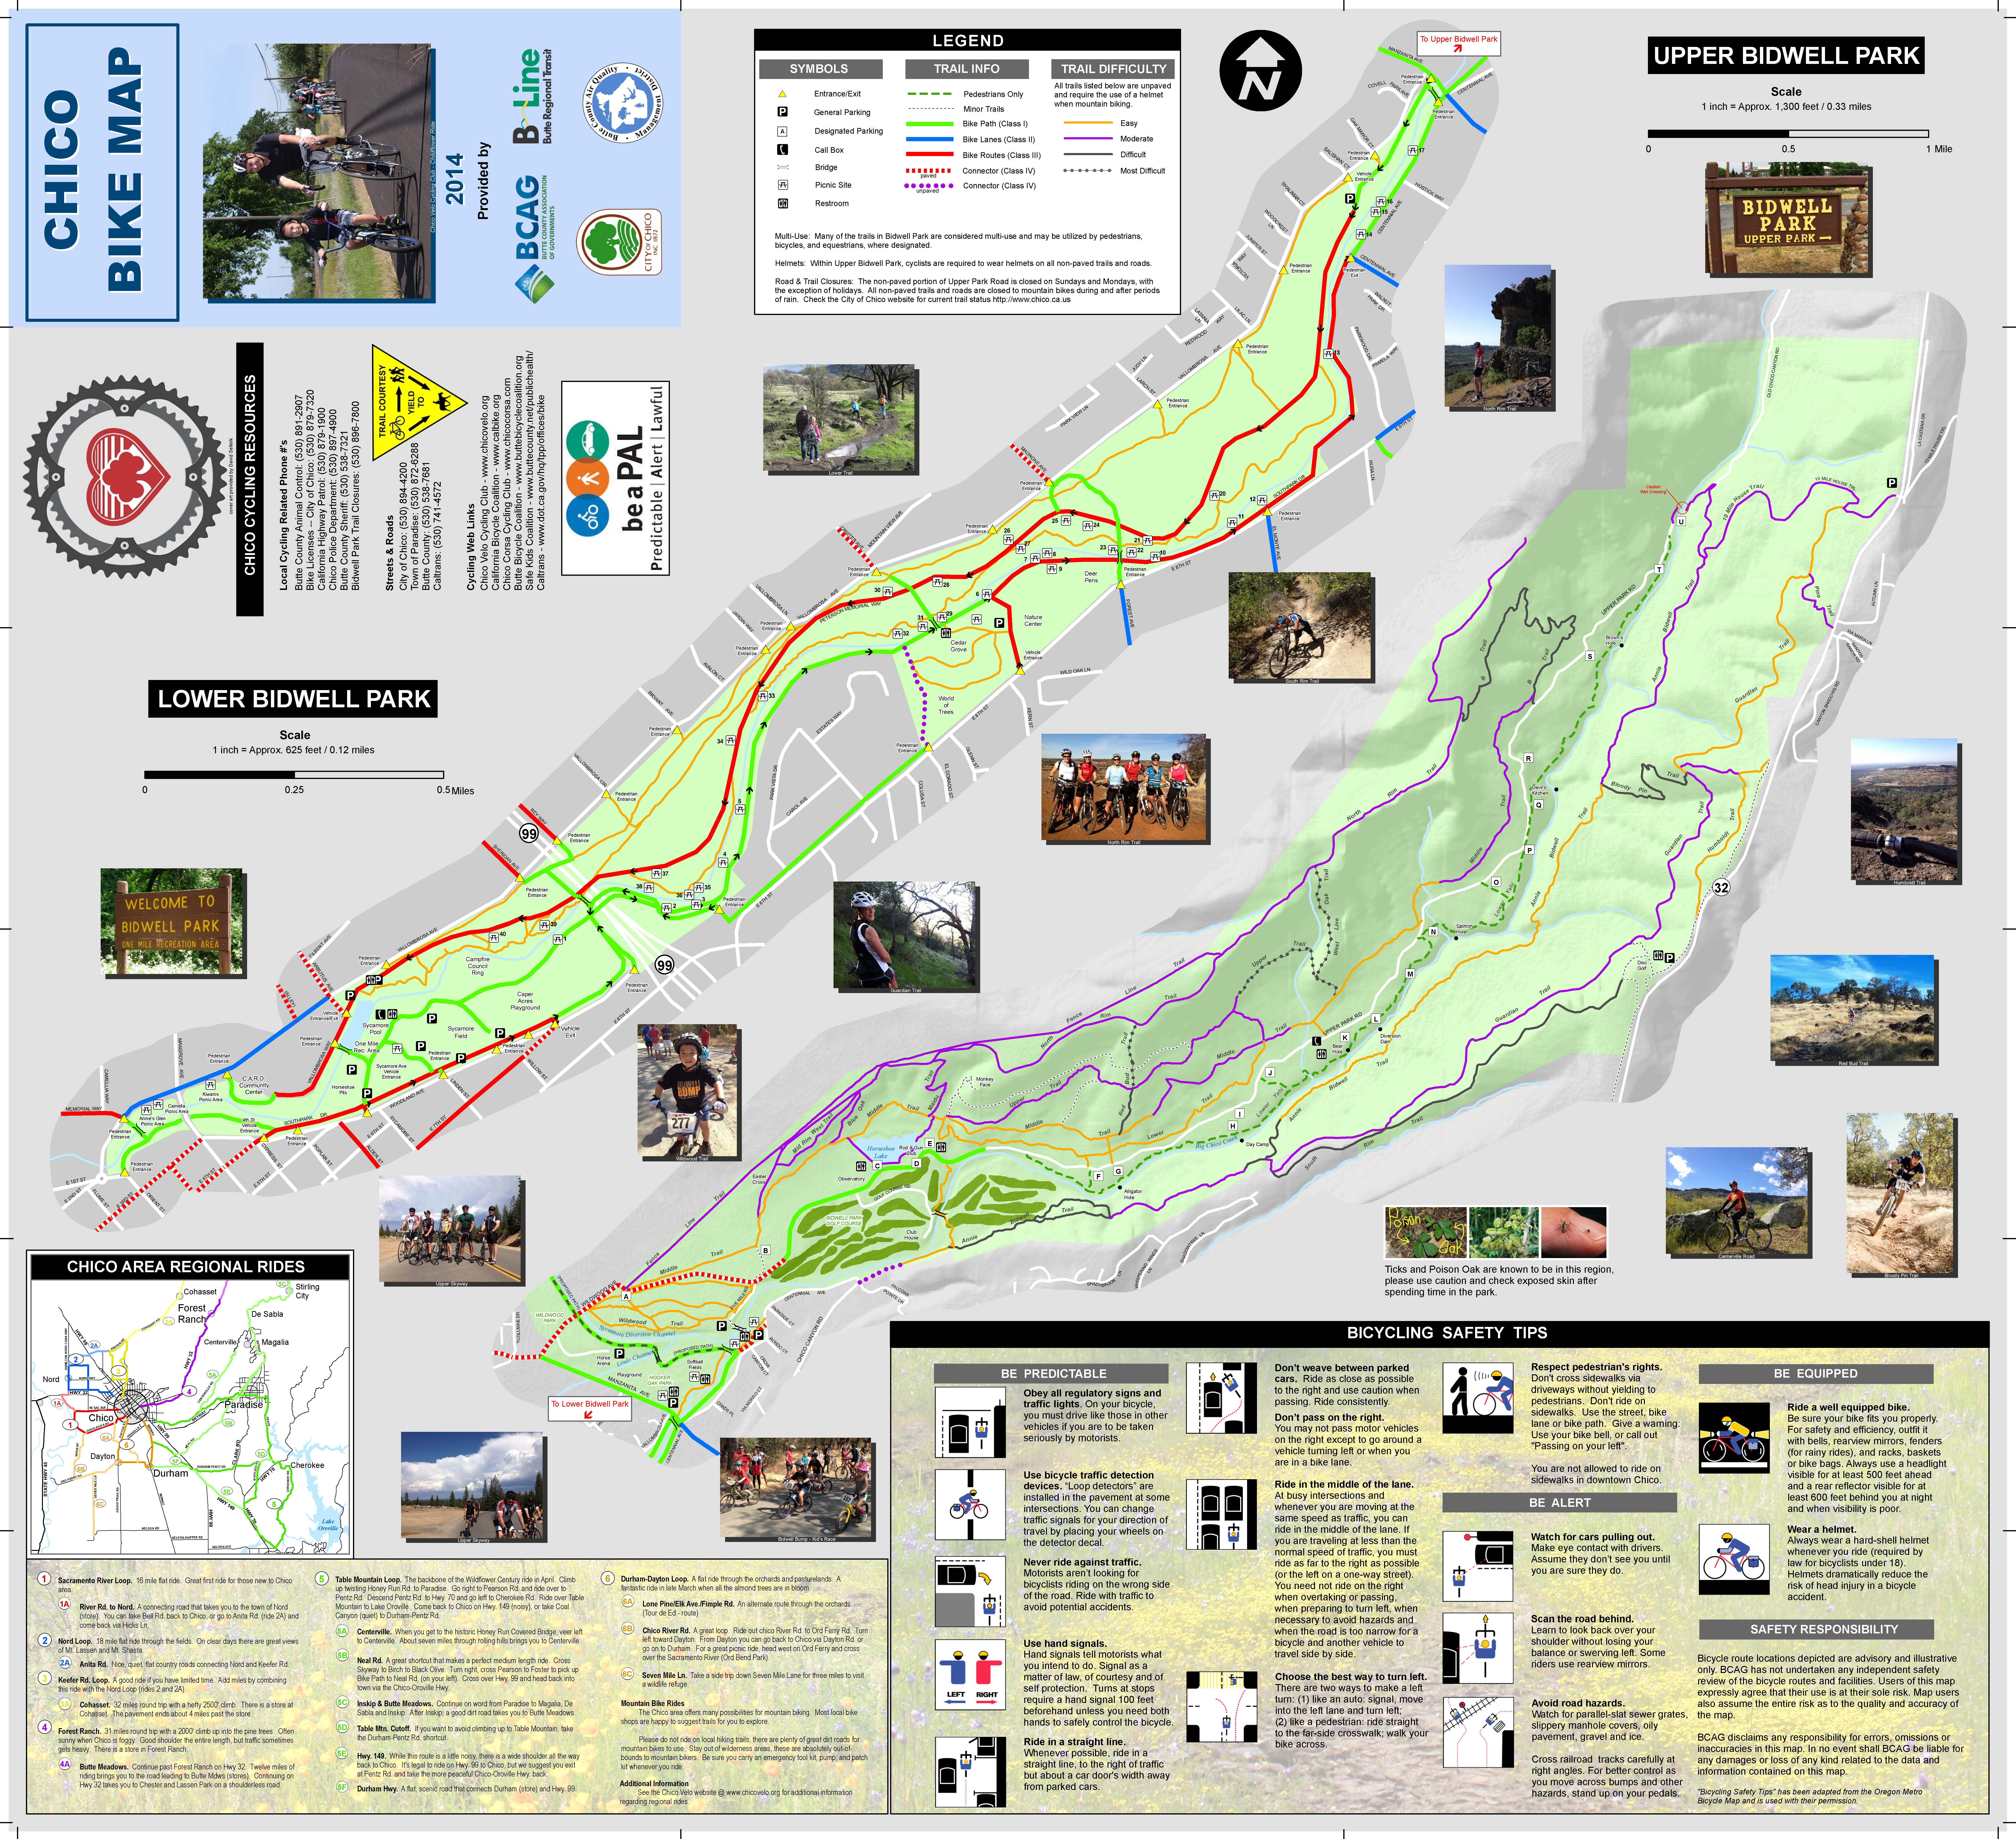 bidwell park map with Bike Maps on Bidwell Park Hike Yahi Trail Chico Hiking Trails together with File Shoshoni tipis as well California National Historic Trail as well Dea thetford forest october 2011 map photos additionally 254257835.